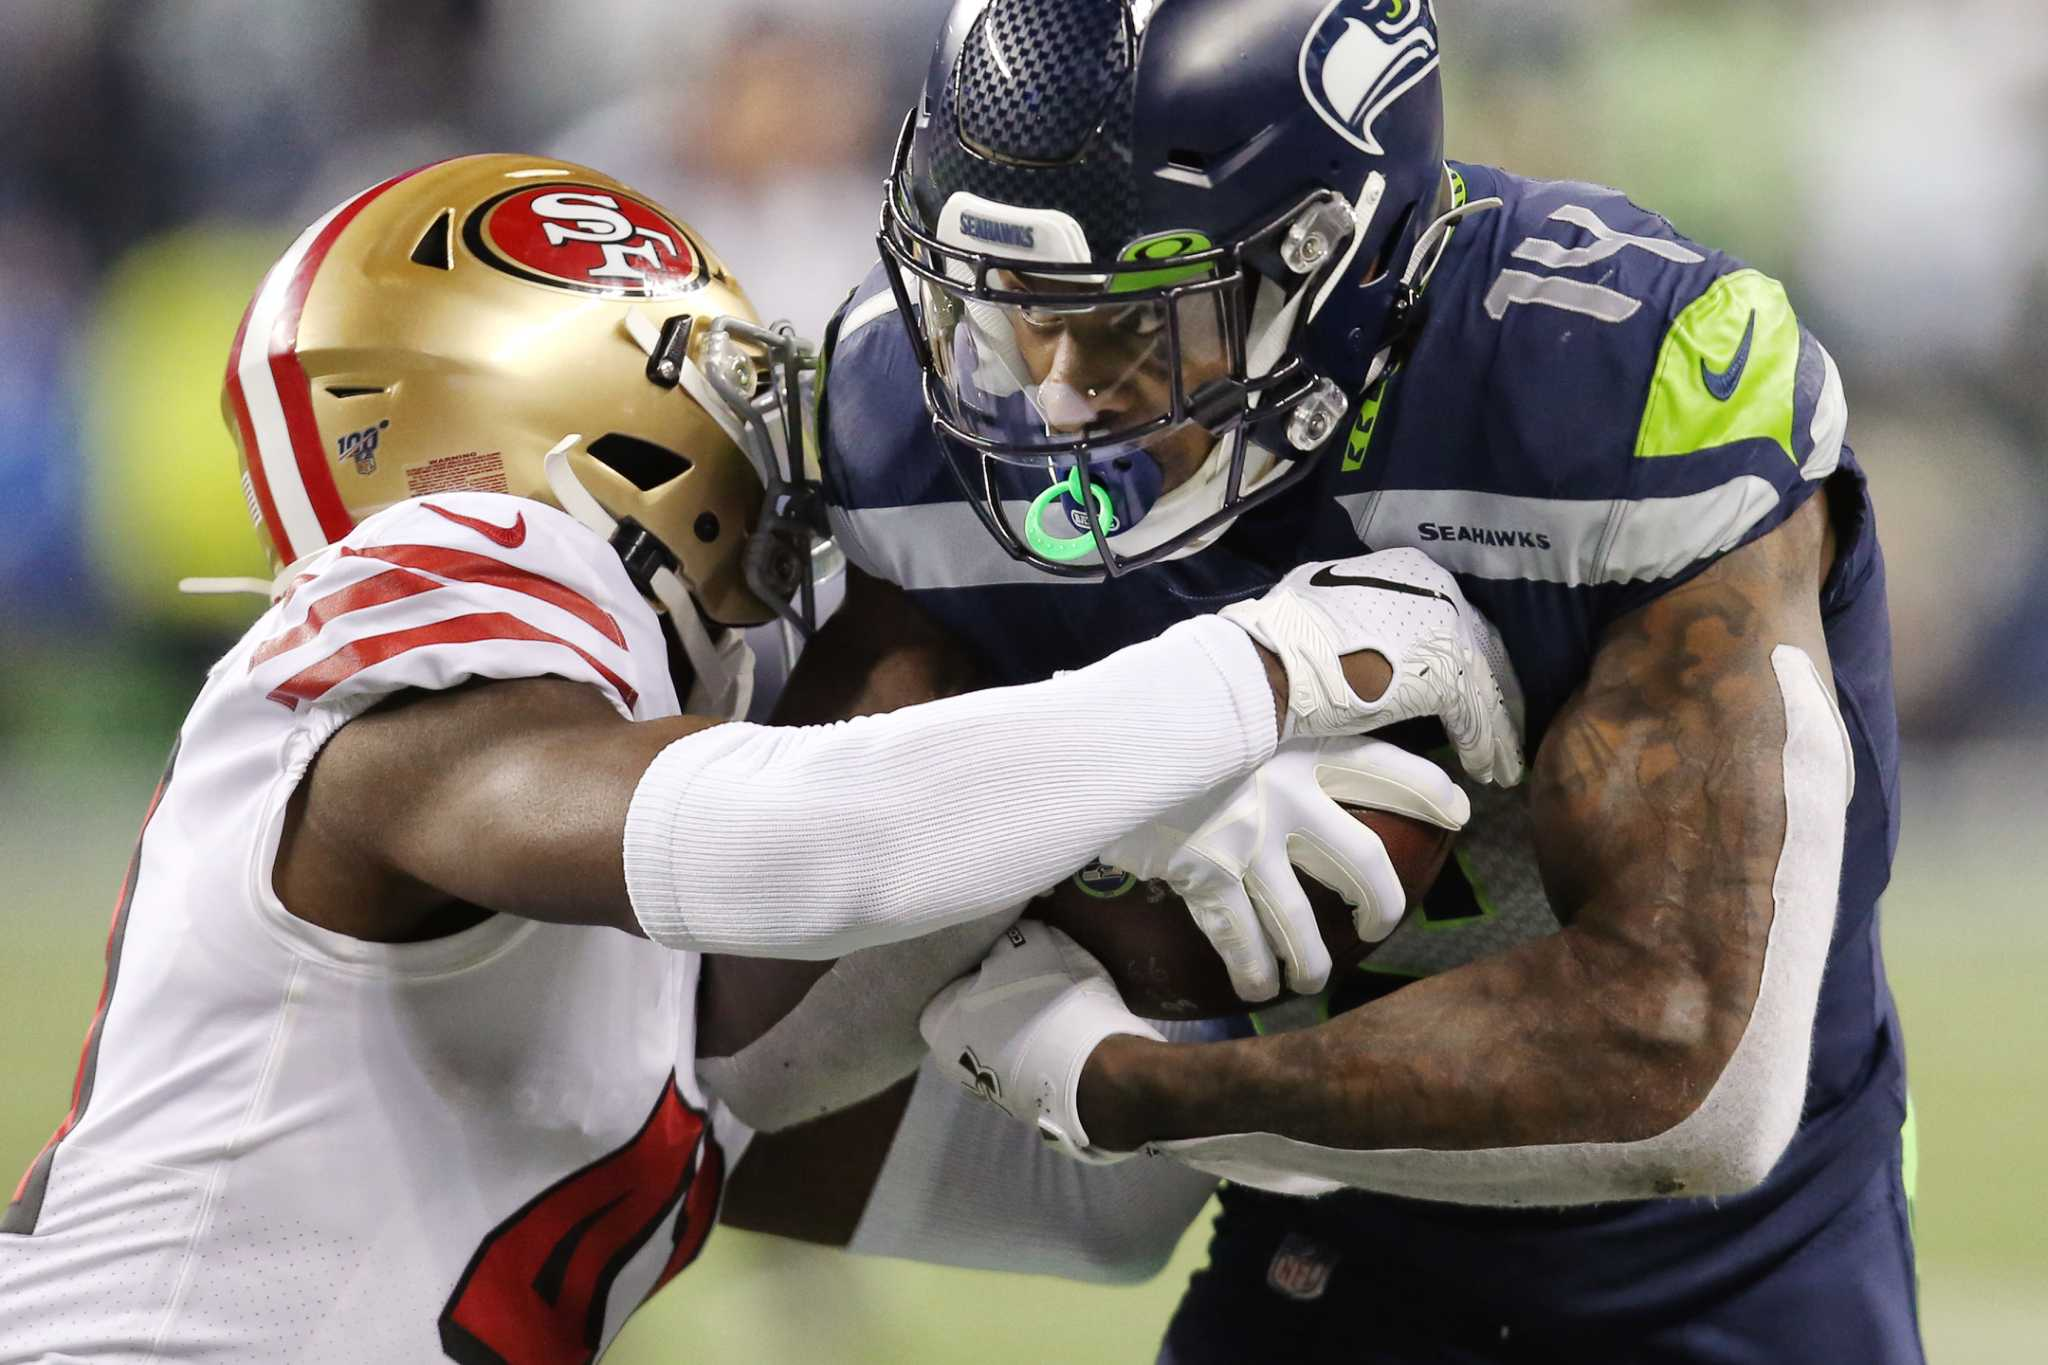 Seattle Seahawks' 2019 rookie class grades: Who besides D.K. Metcalf made big impression?